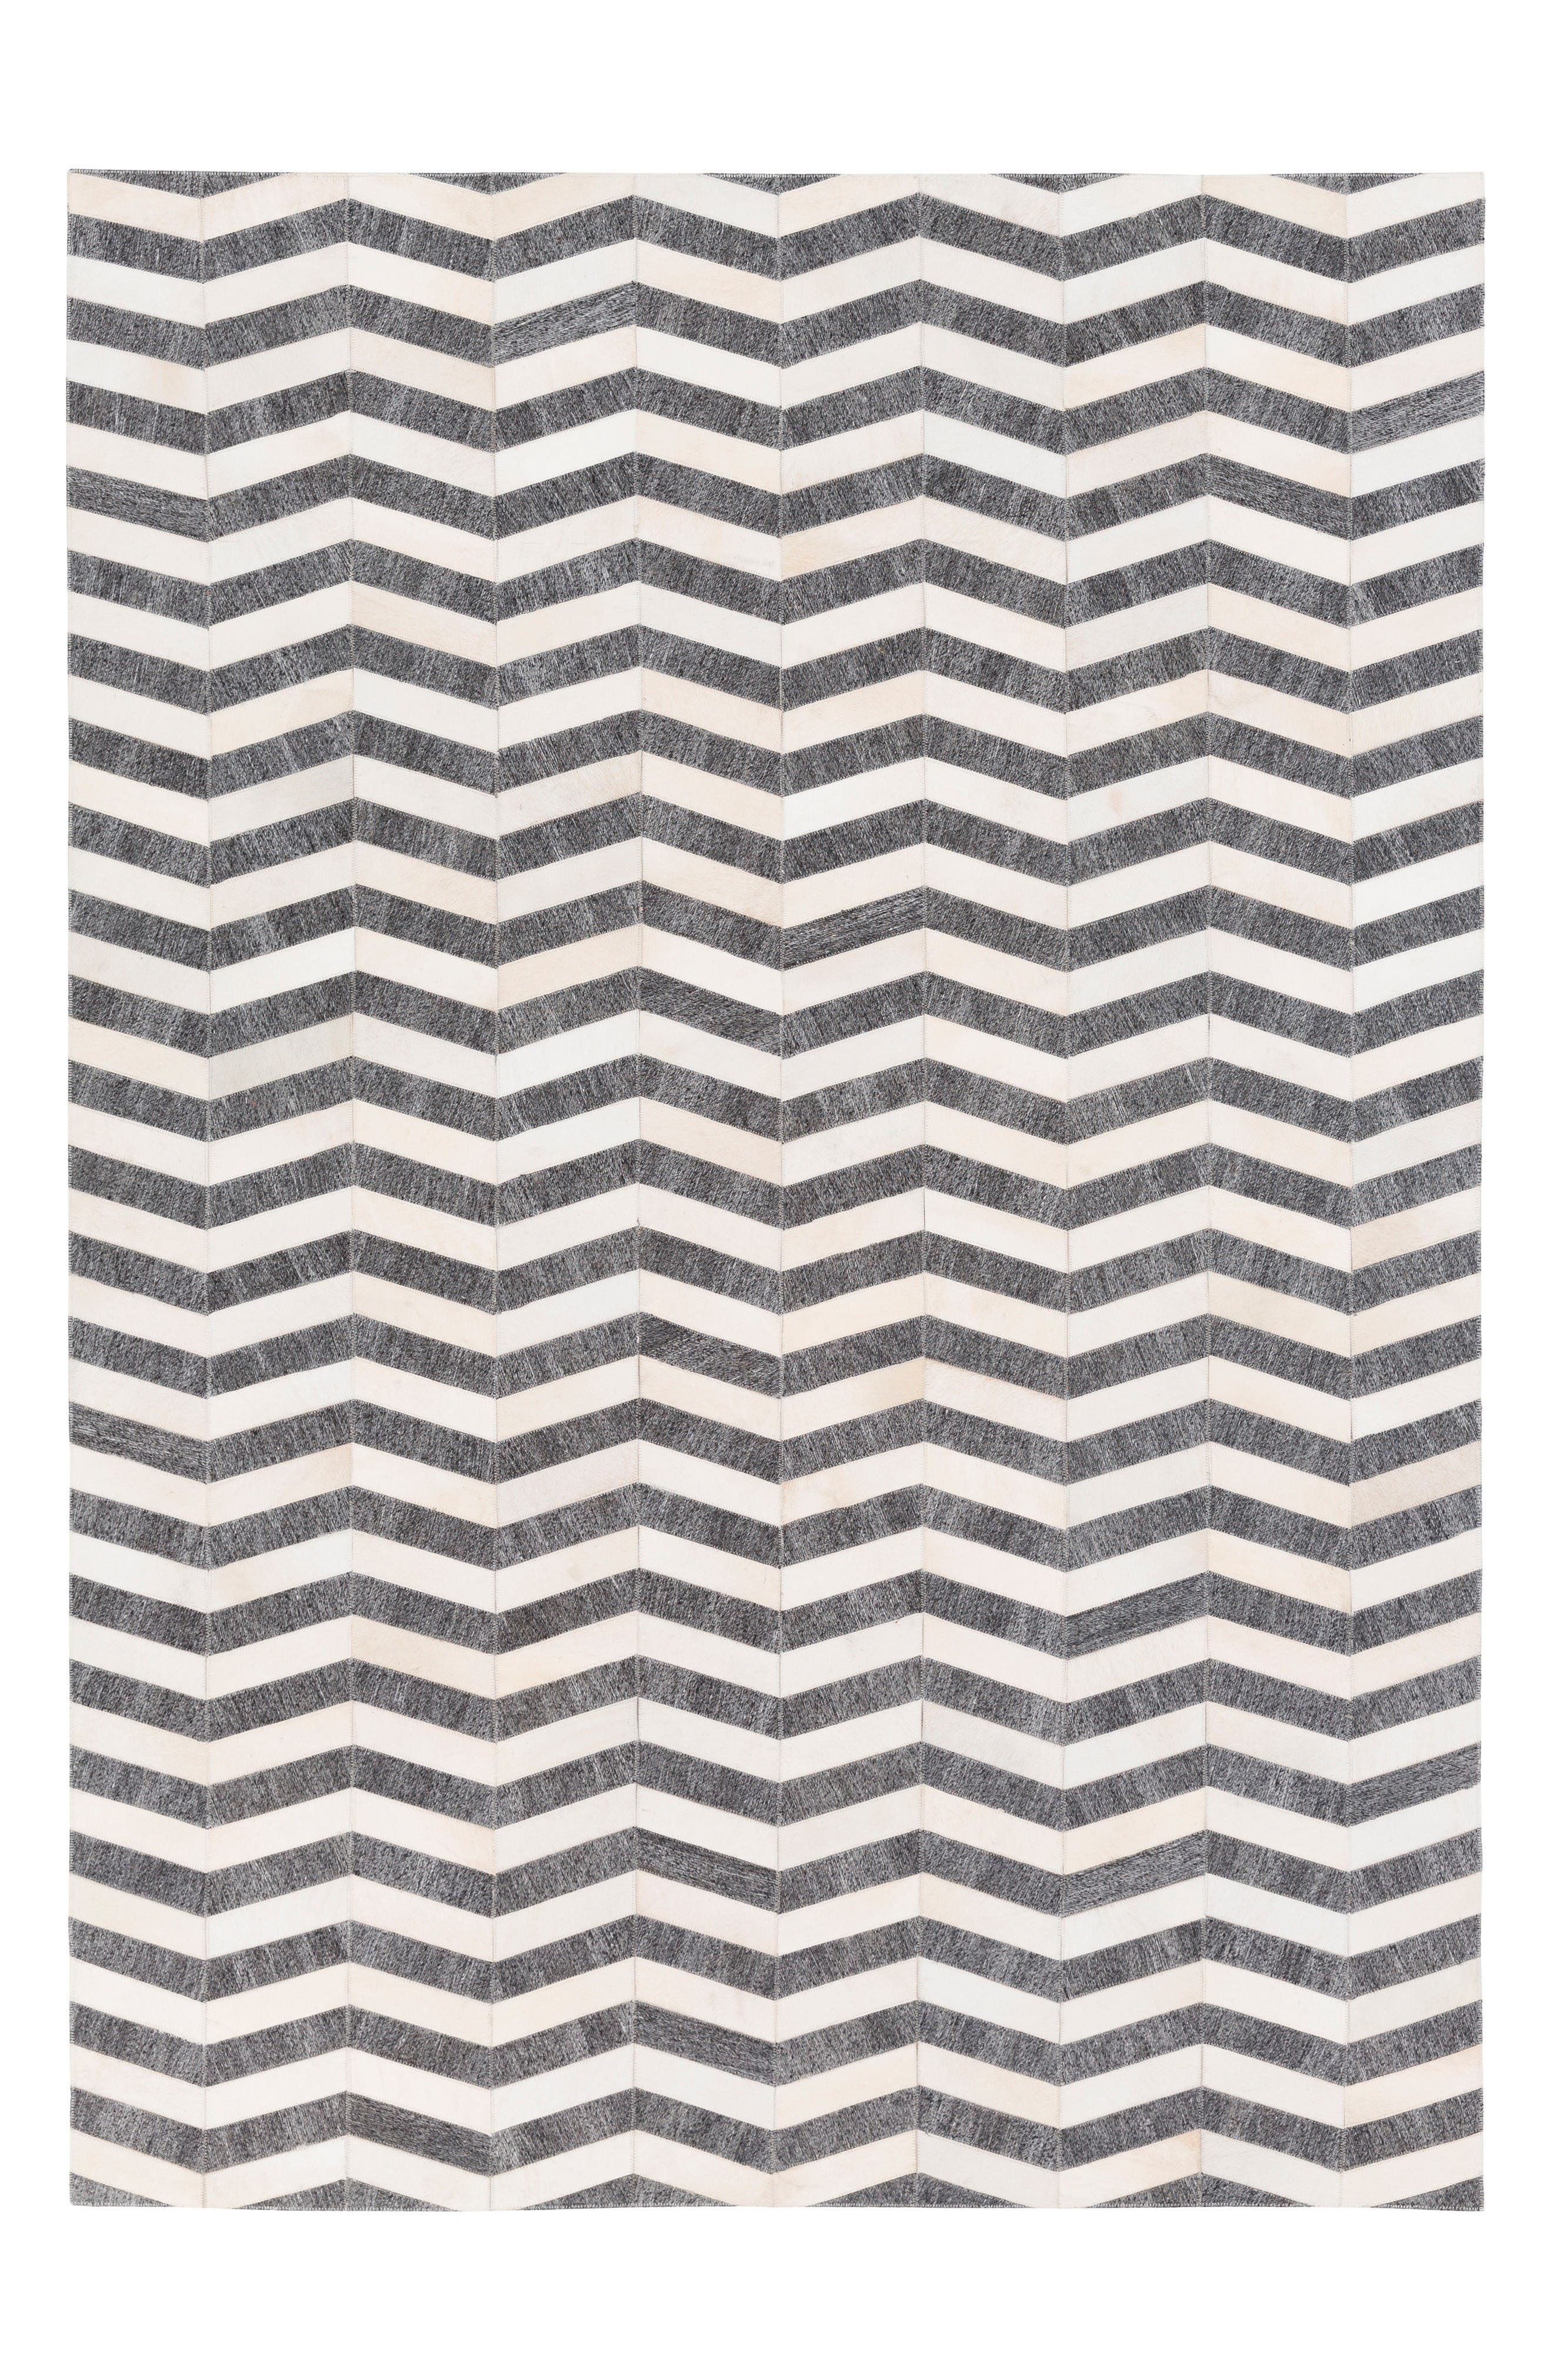 Medora Chevron Genuine Calf Hair Rug,                         Main,                         color, Grey